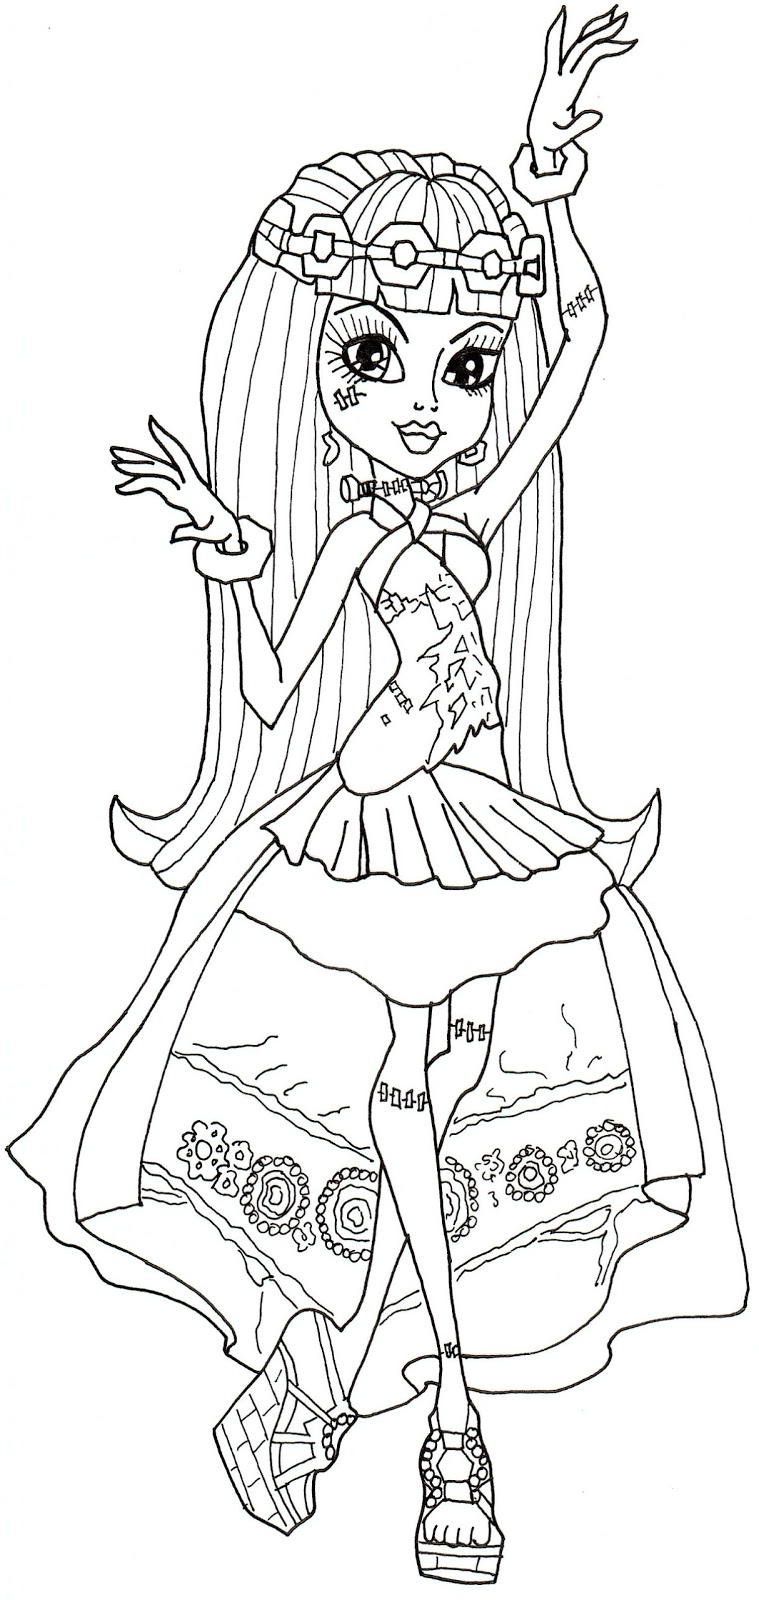 Free Printable Monster High Coloring Pages: June 2013